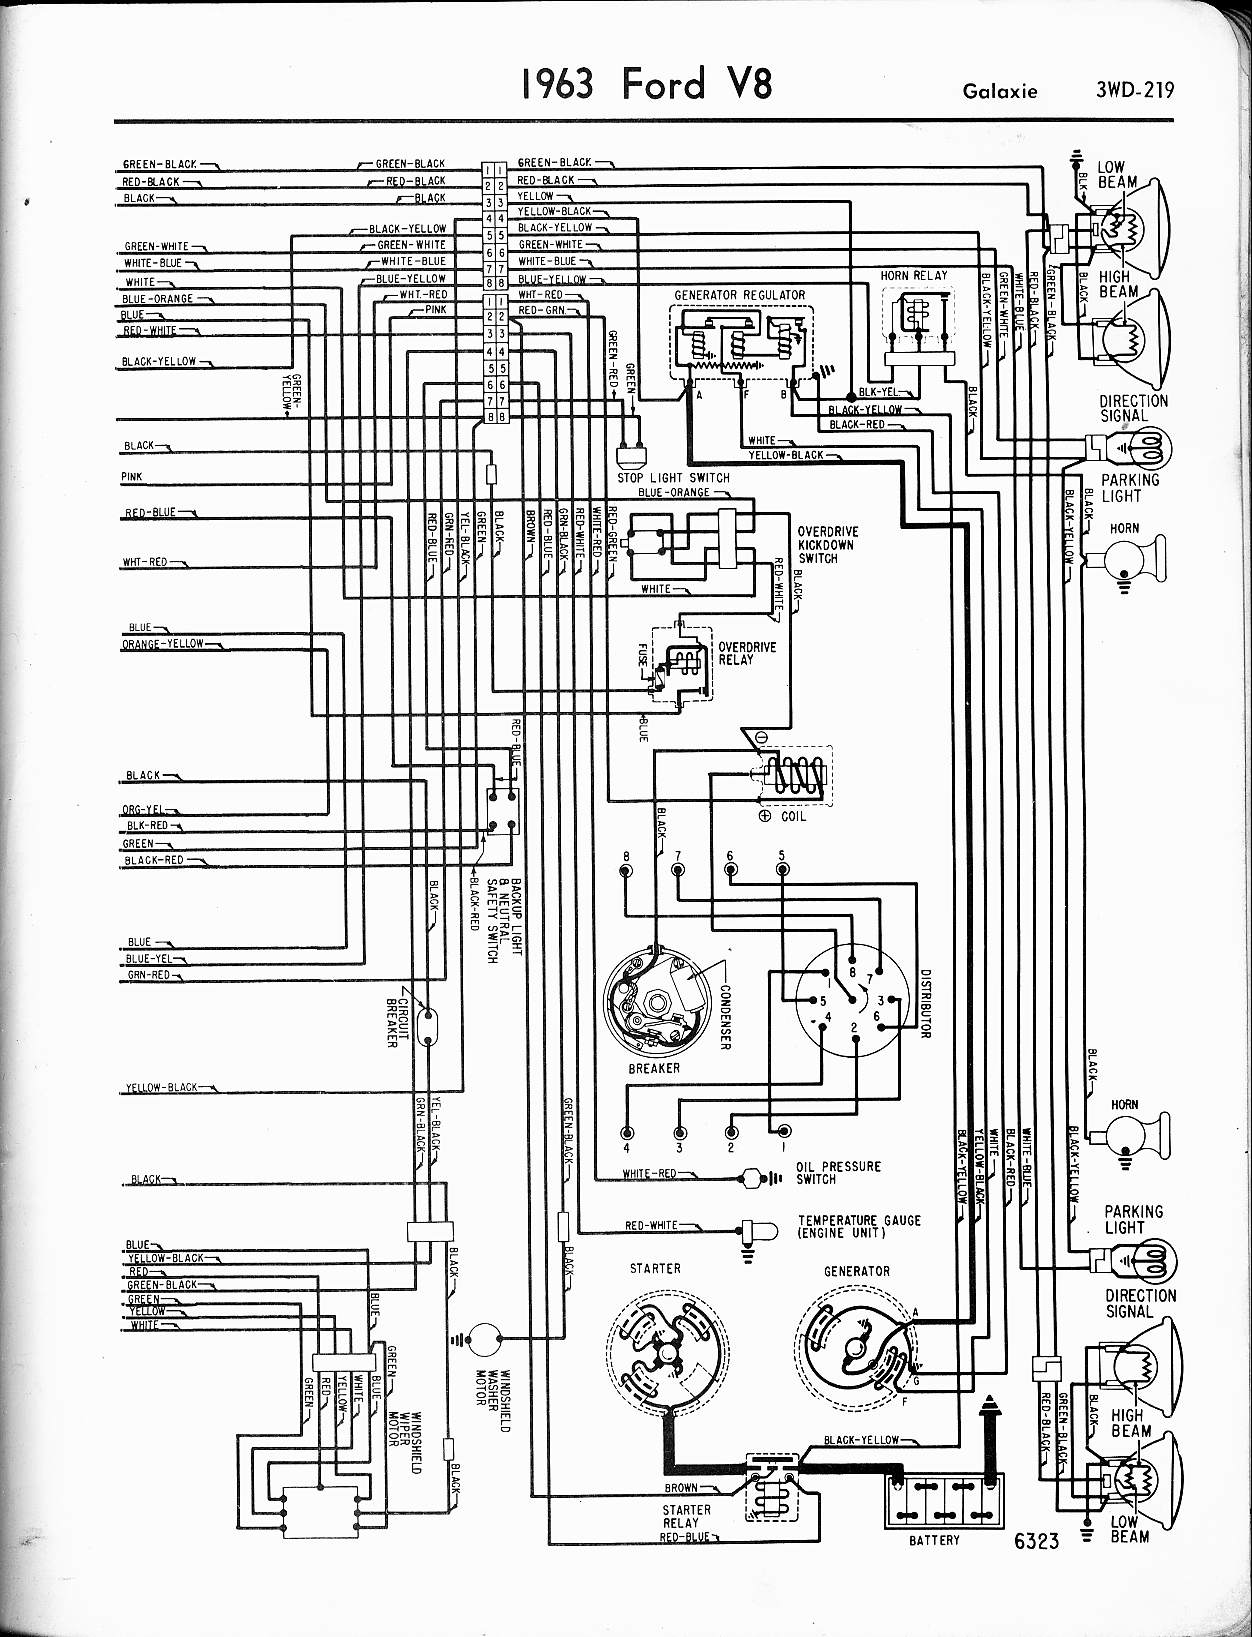 1963 ford galaxie wiring diagram online circuit wiring diagram u2022 rh electrobuddha co uk